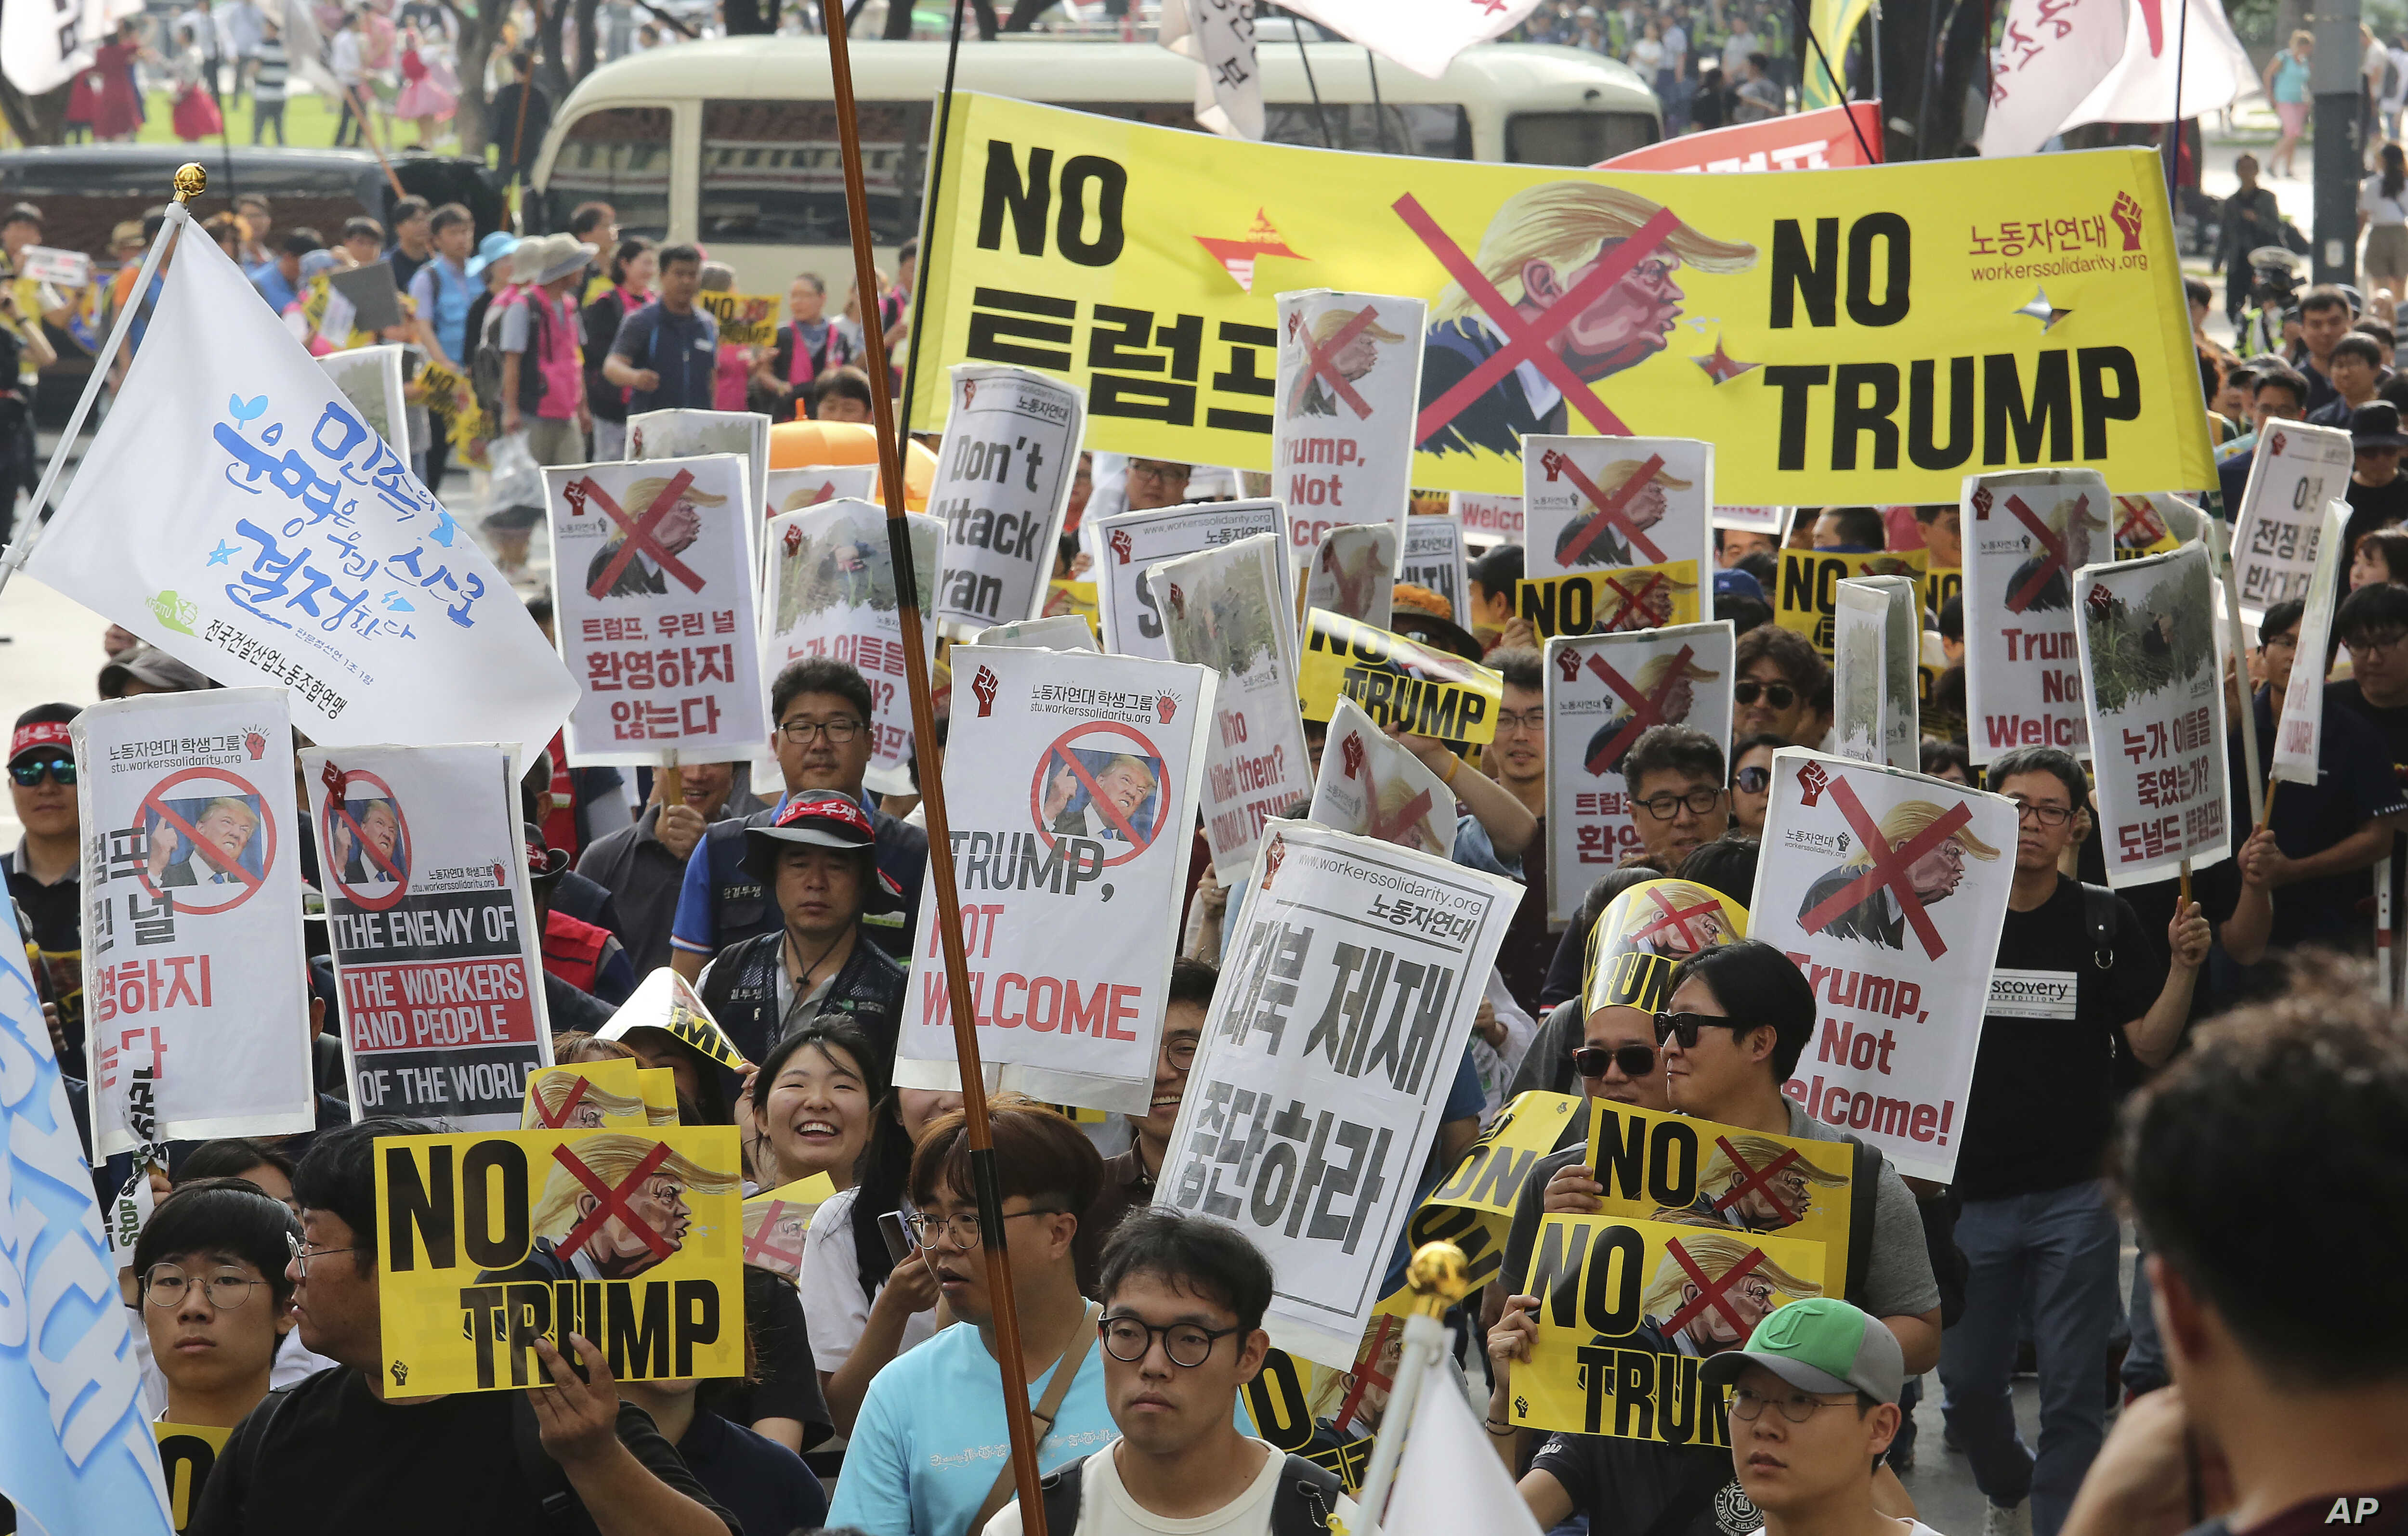 South Korea Welcomes Trump, But Skeptically | Voice of